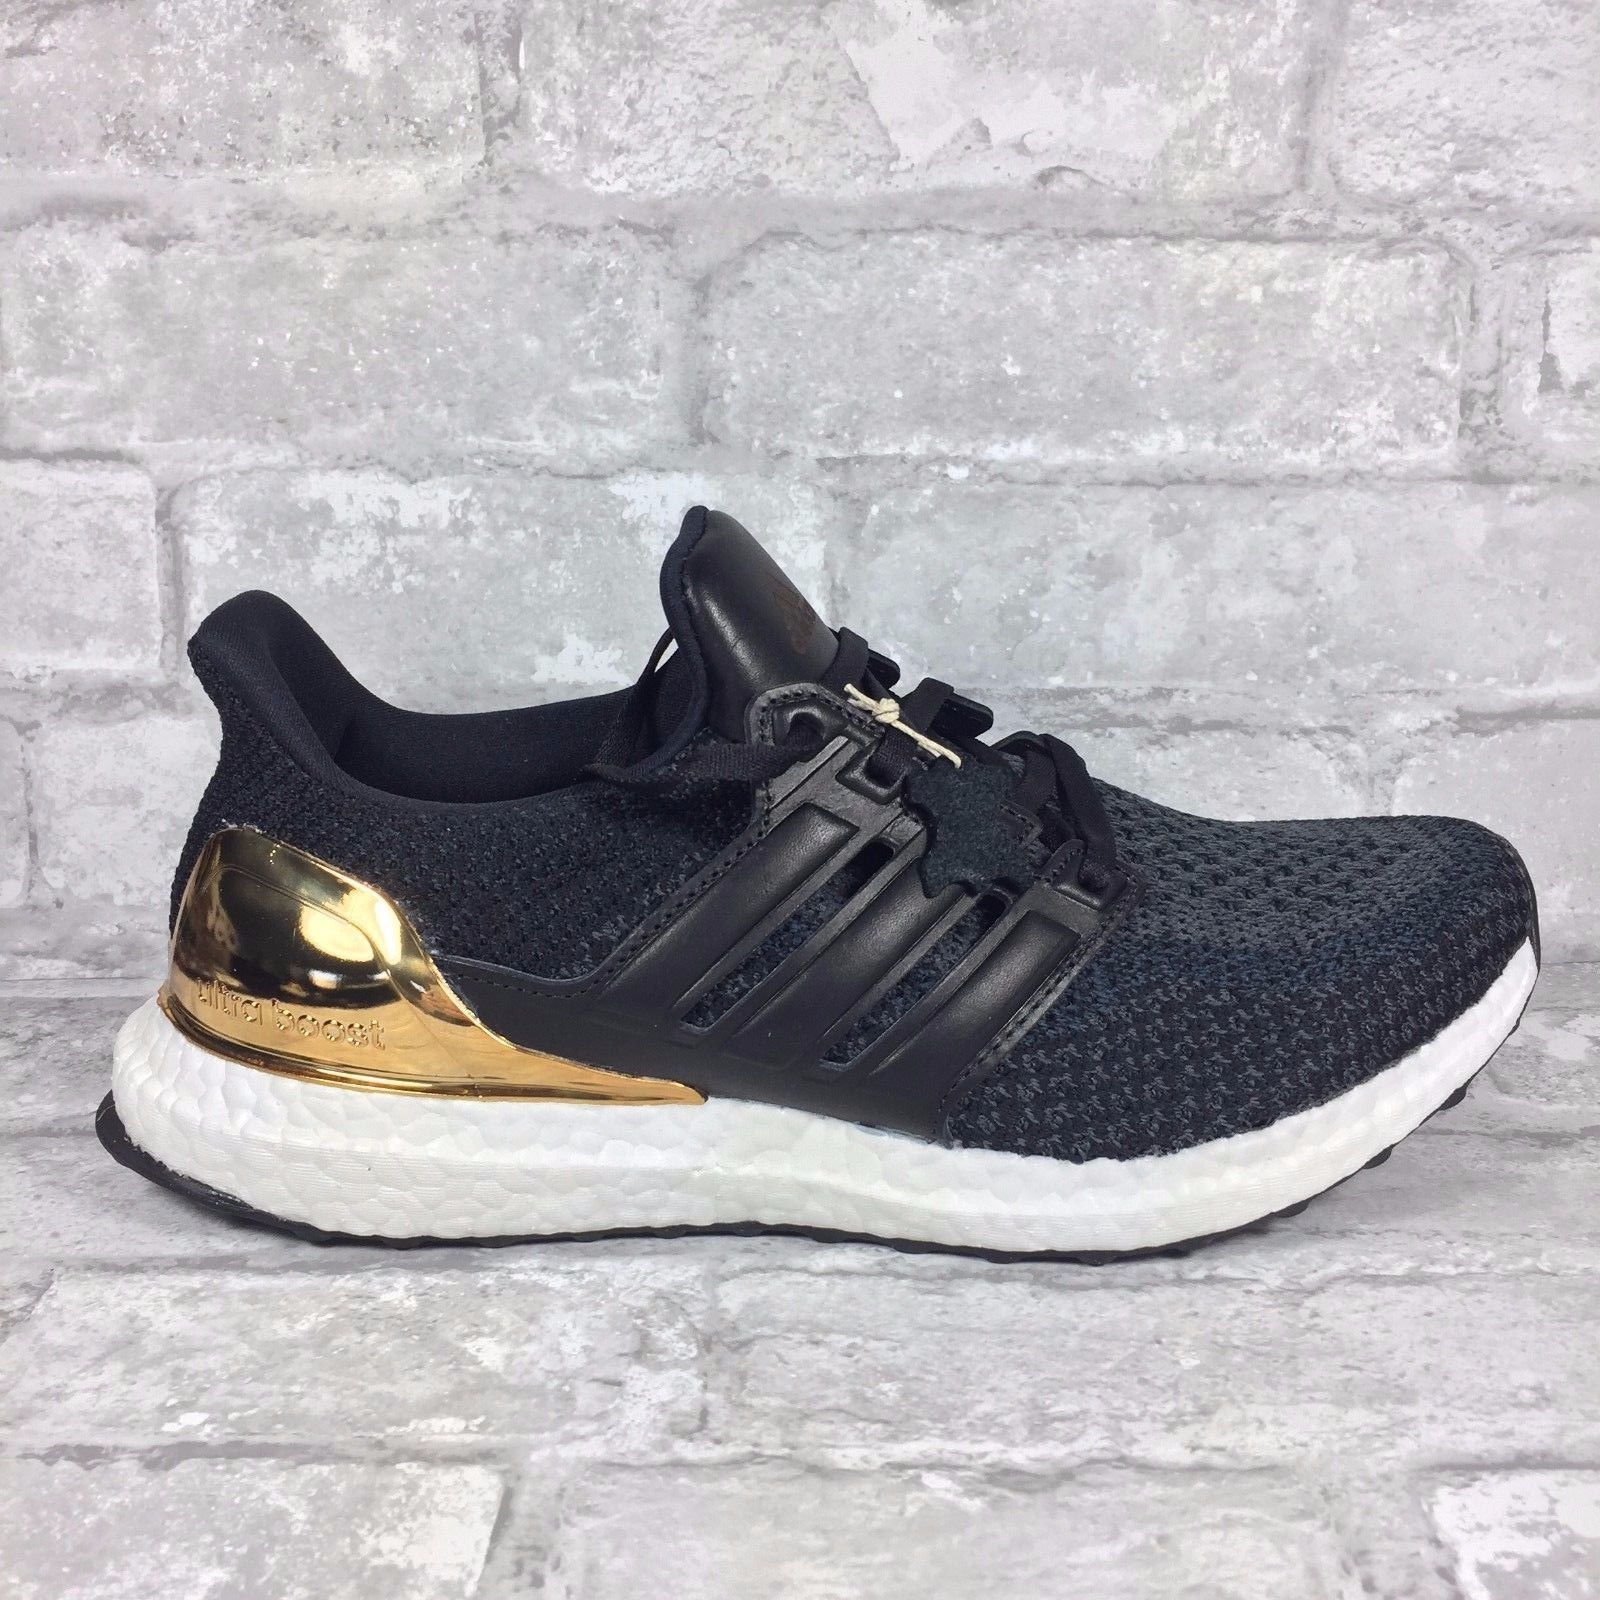 Men's Adidas Ultra Boost LTD Olympic Medal Black Gold BB3929 Size: 8-13